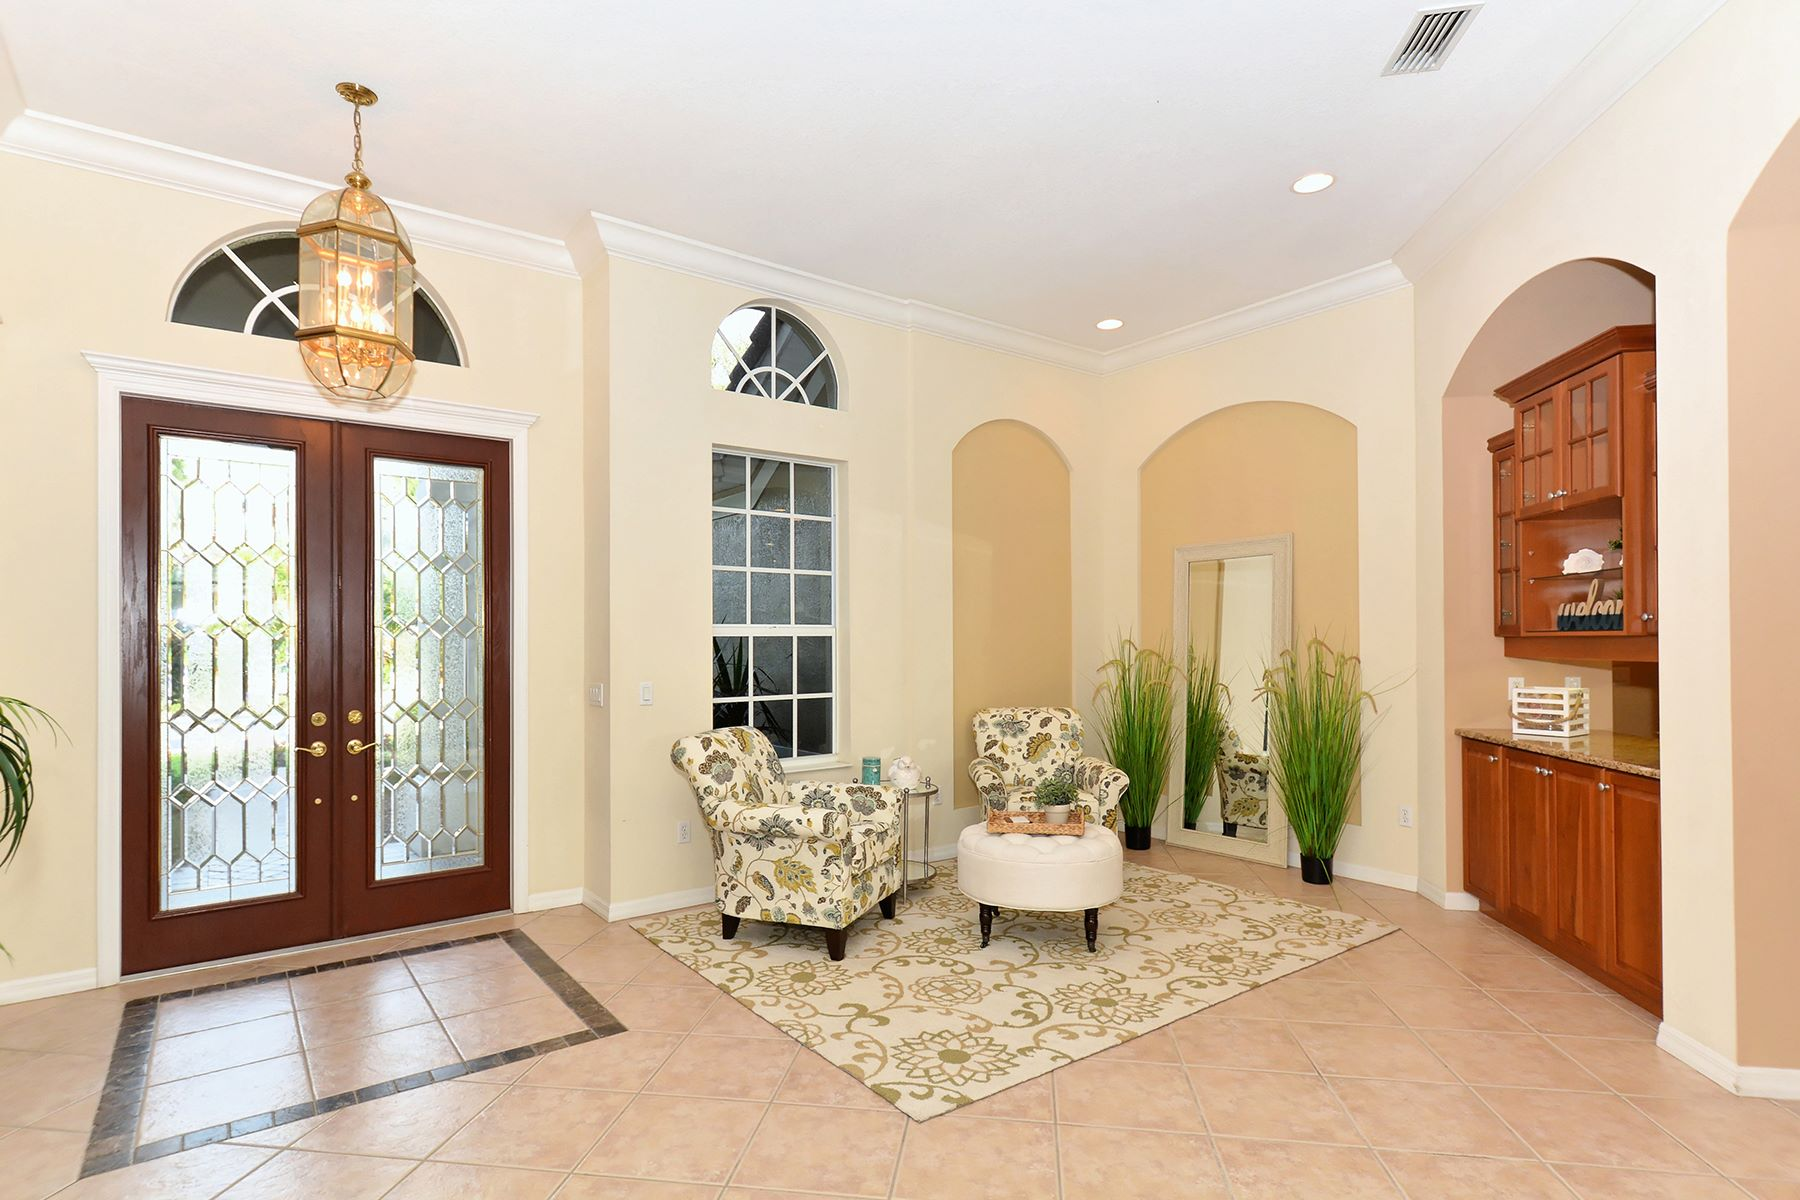 Maison unifamiliale pour l Vente à LAKEWOOD RANCH 13404 Blythefield Terr Lakewood Ranch, Florida, 34202 États-Unis